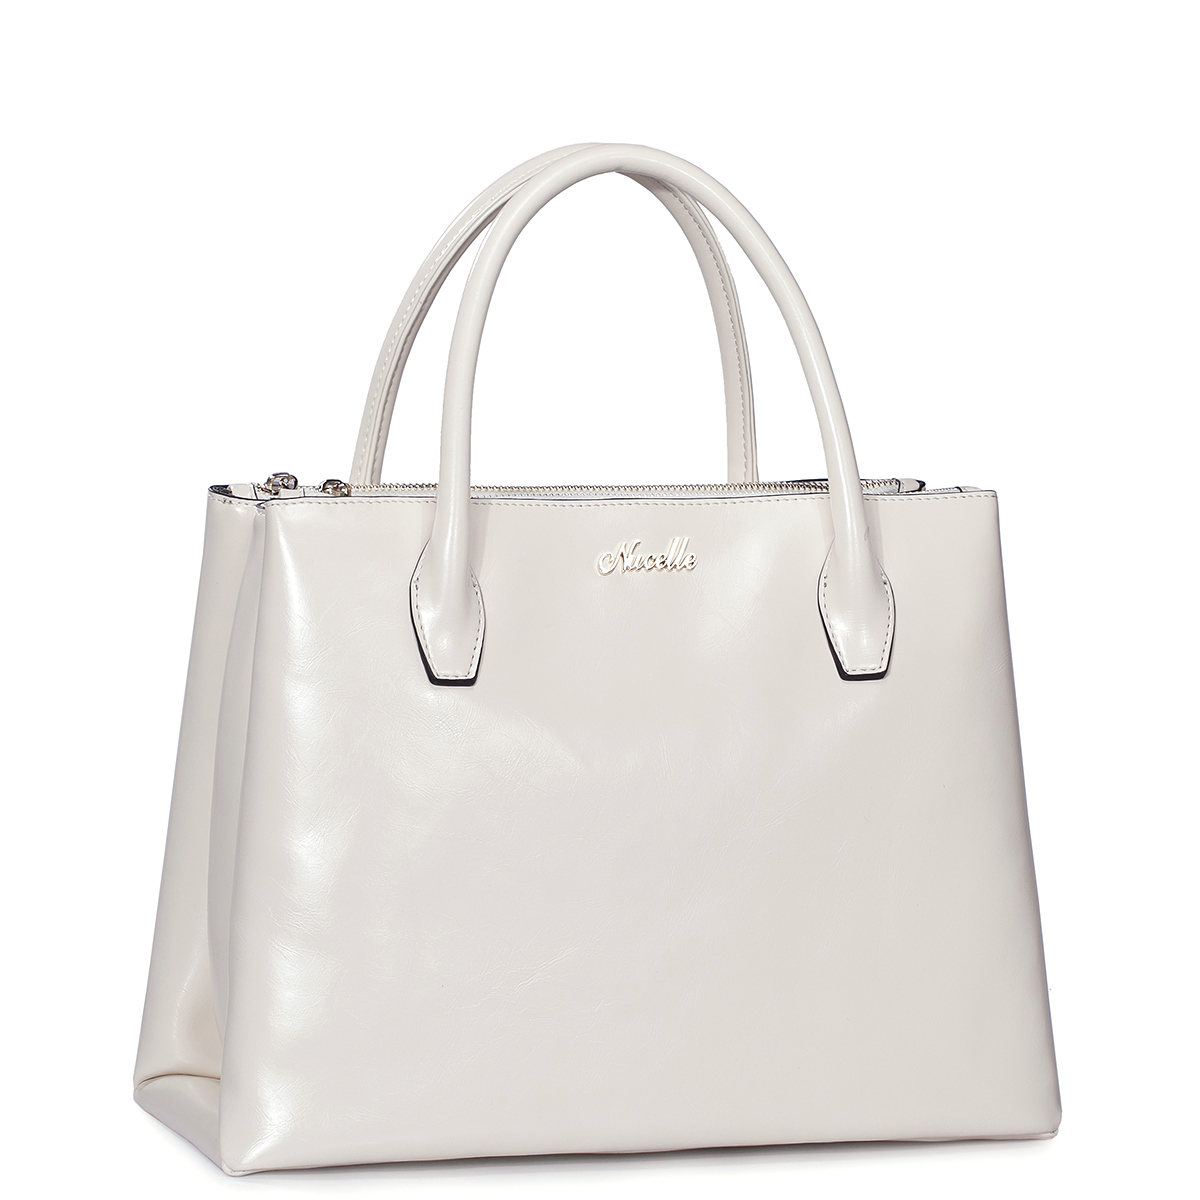 Even More White Hot Handbags for Summer - TheGloss